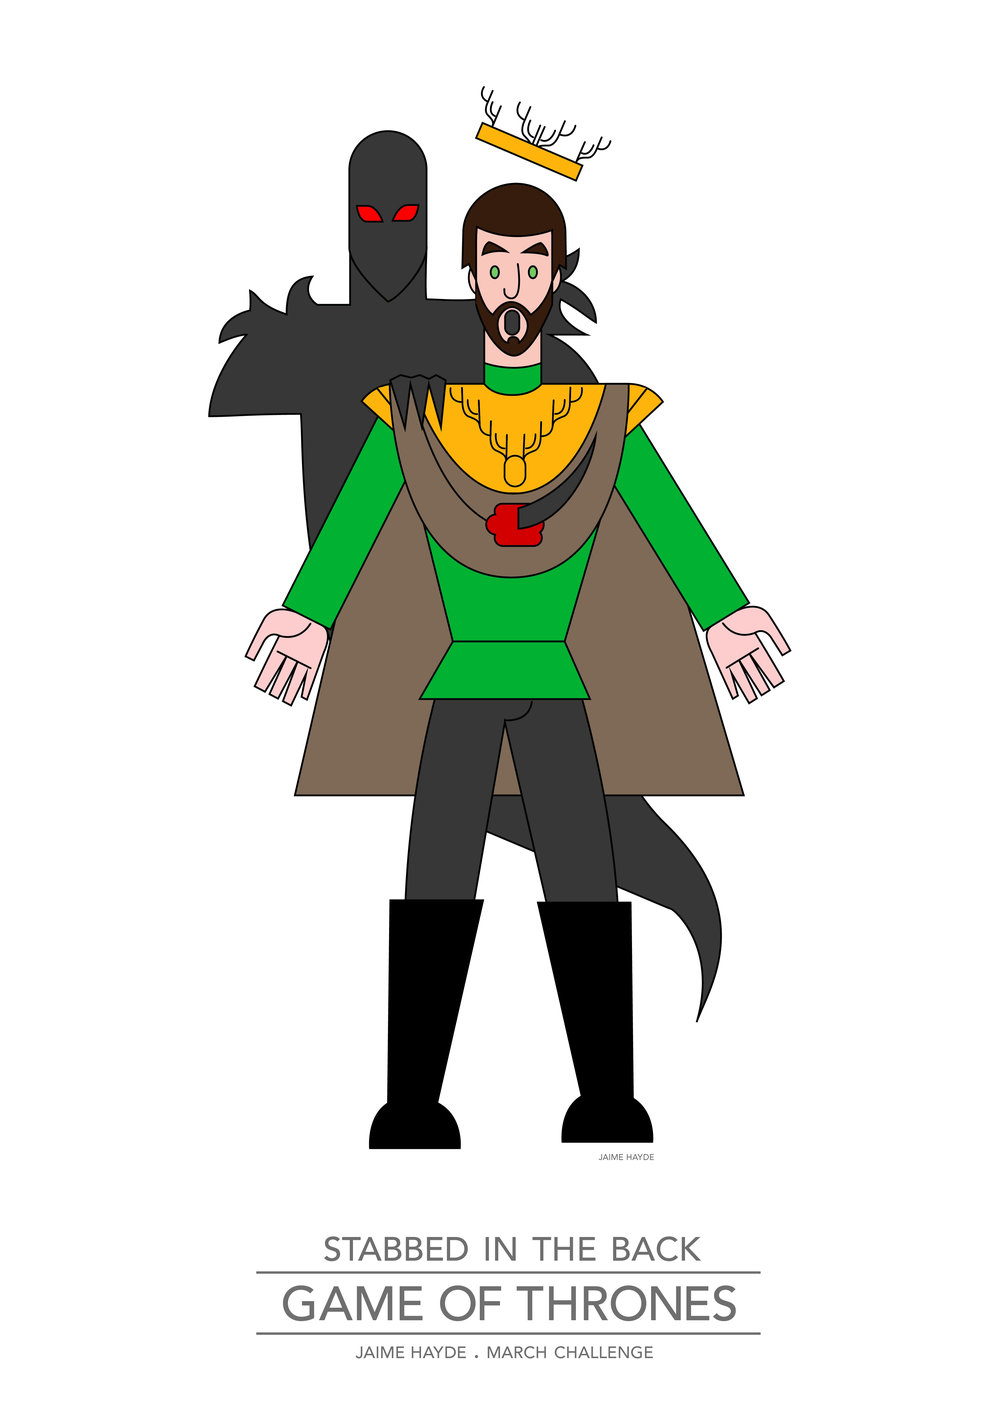 Game-of-thrones-Juego-de-tronos-illustration-renly.jpg